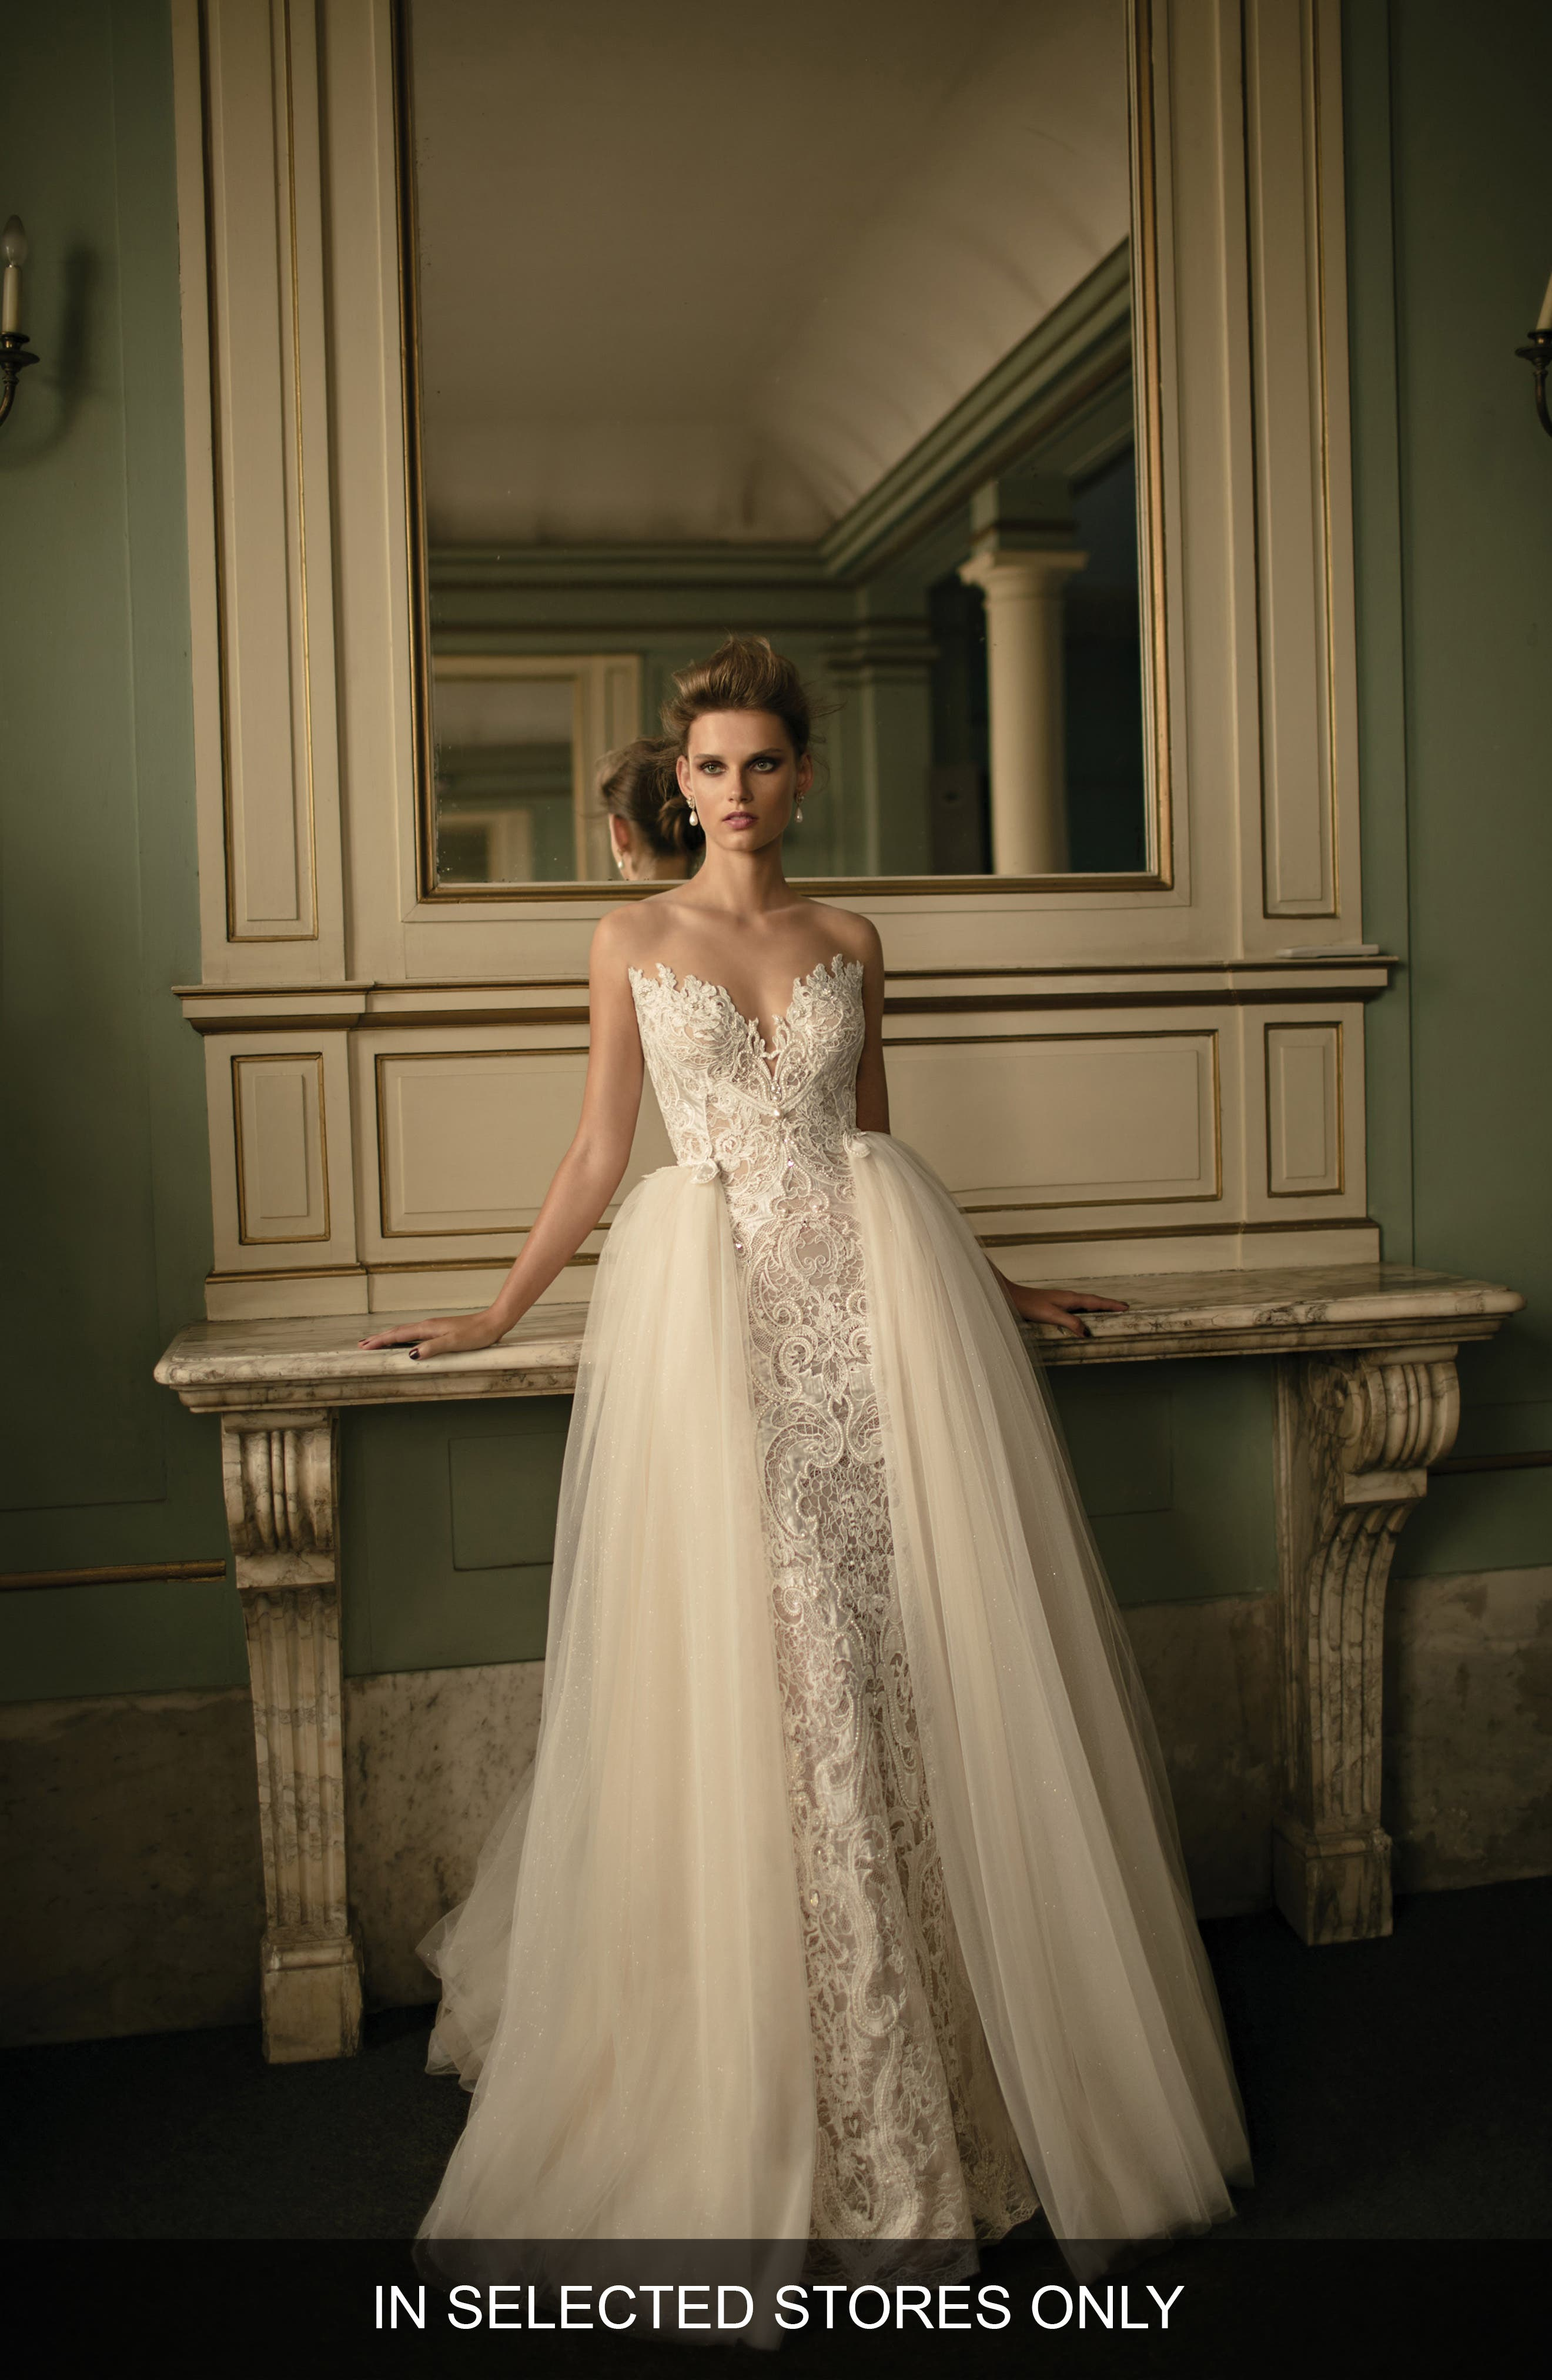 Beaded Lace & Tulle Ballgown,                             Alternate thumbnail 6, color,                             900